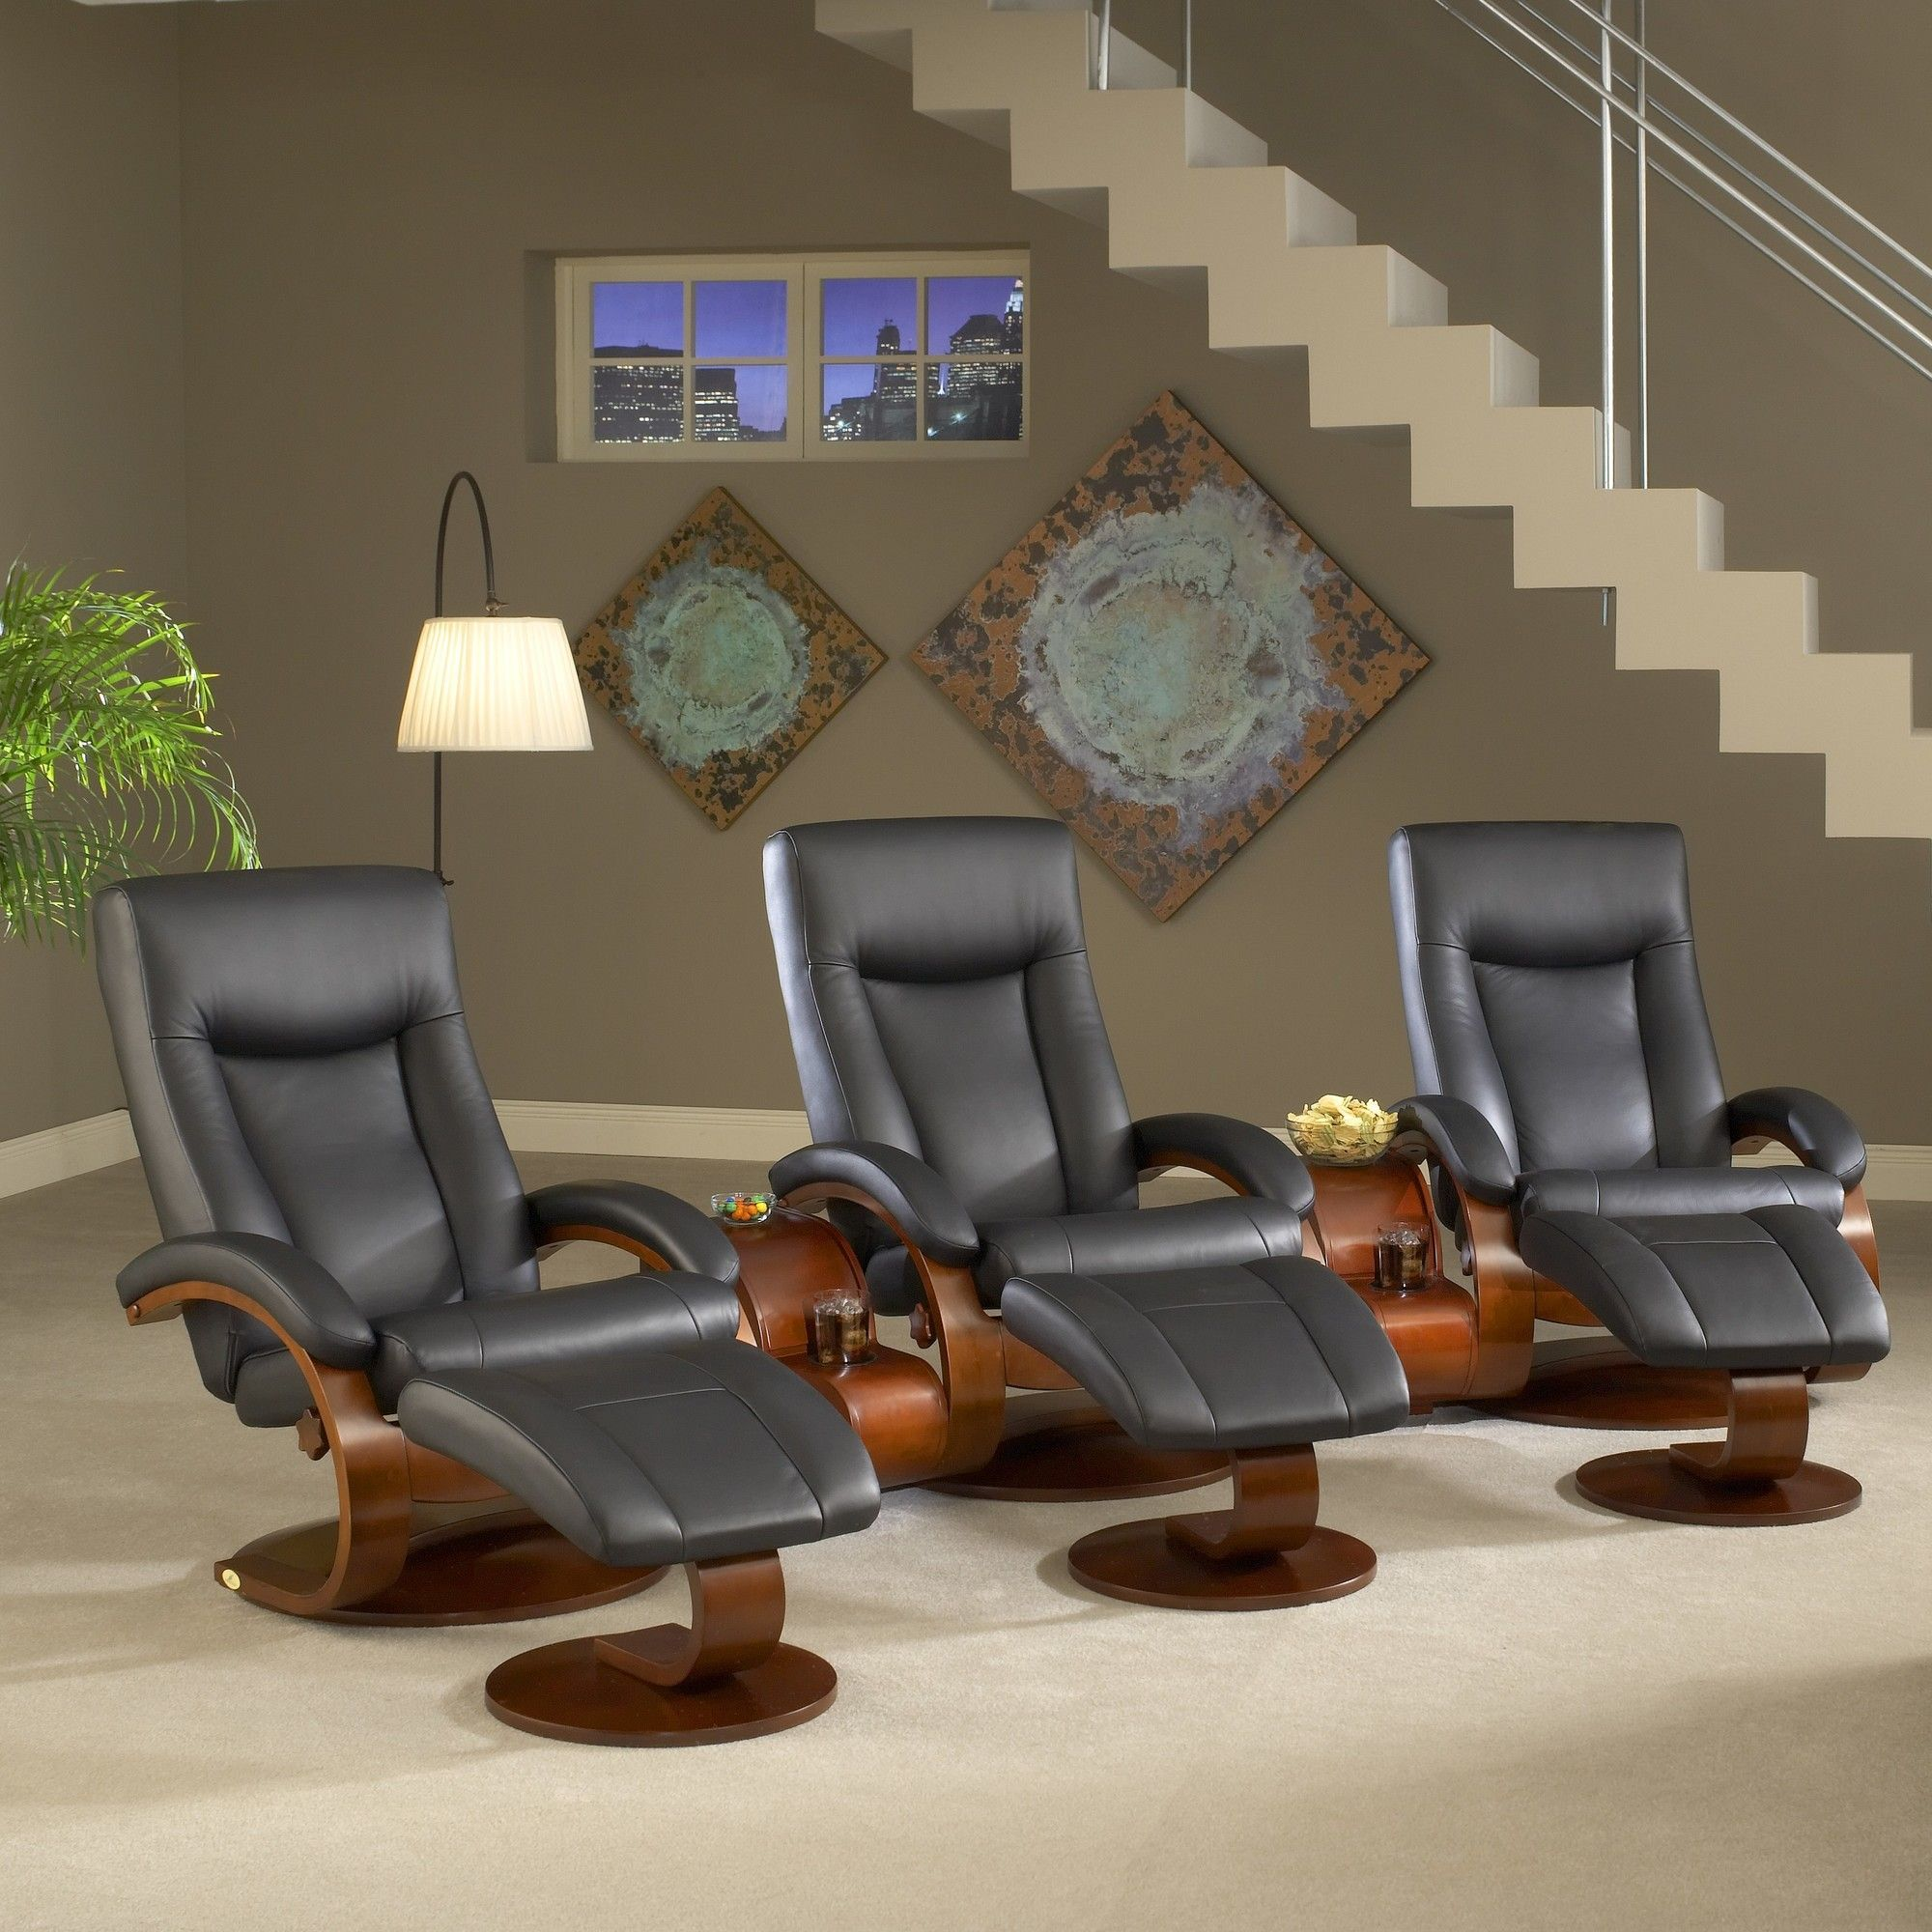 Furniture, Home Decor, Tools, Office Furniture, Bedding